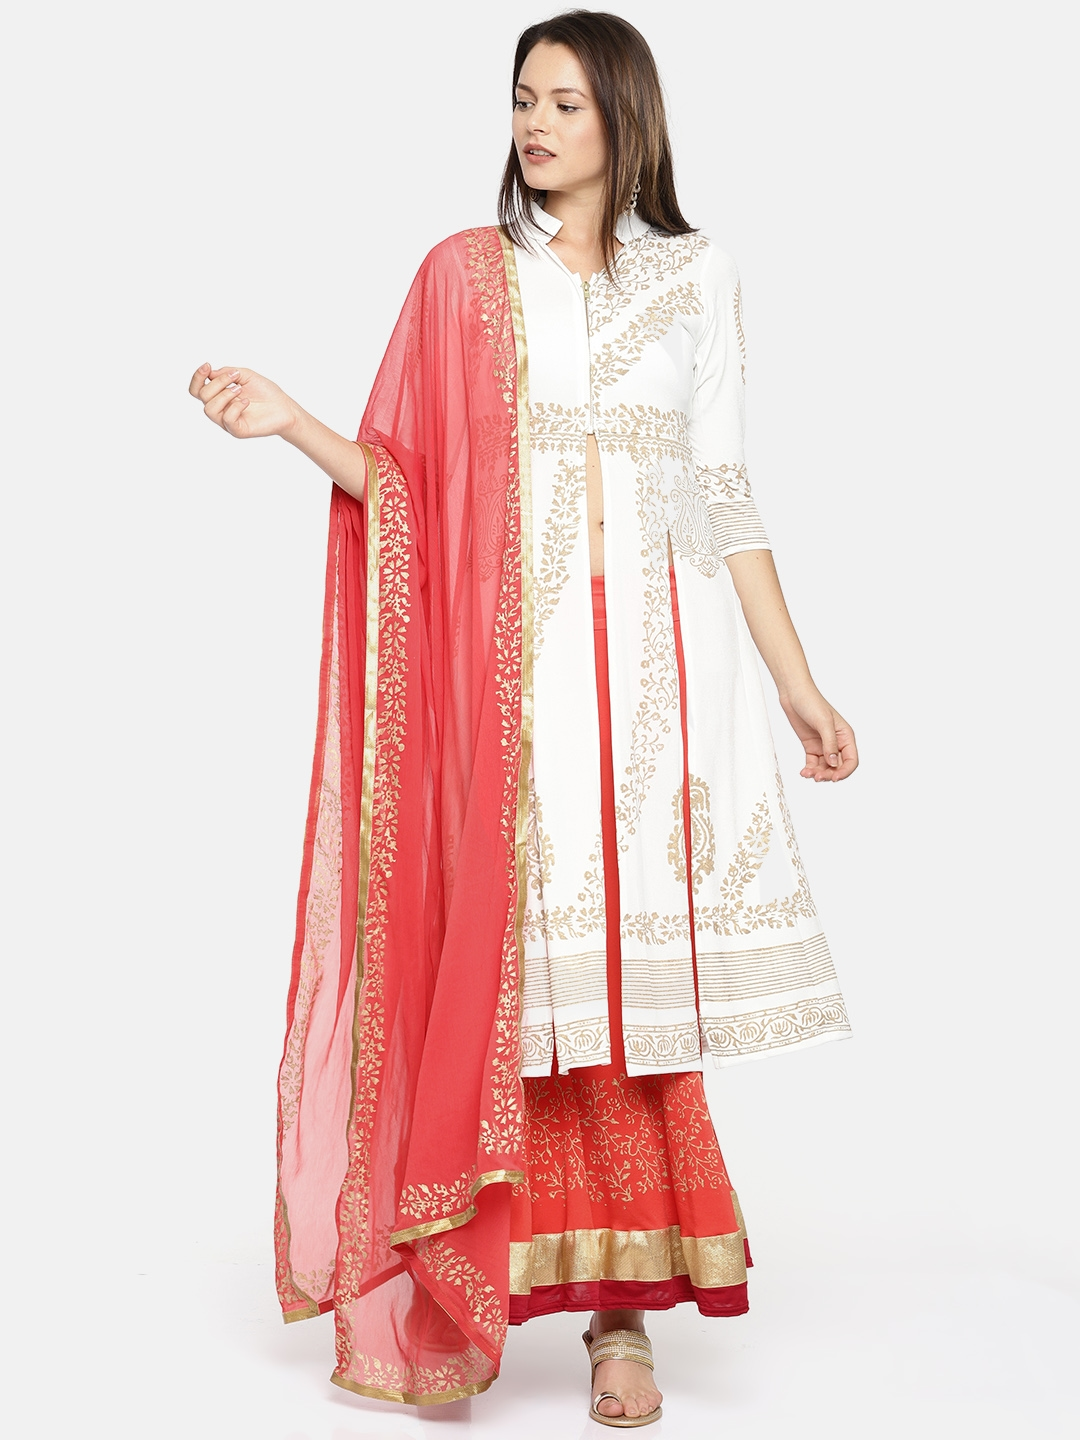 6a522af483 Ira Soleil Off-White & Red Printed Ready to Wear Lehenga & Blouse with  Dupatta